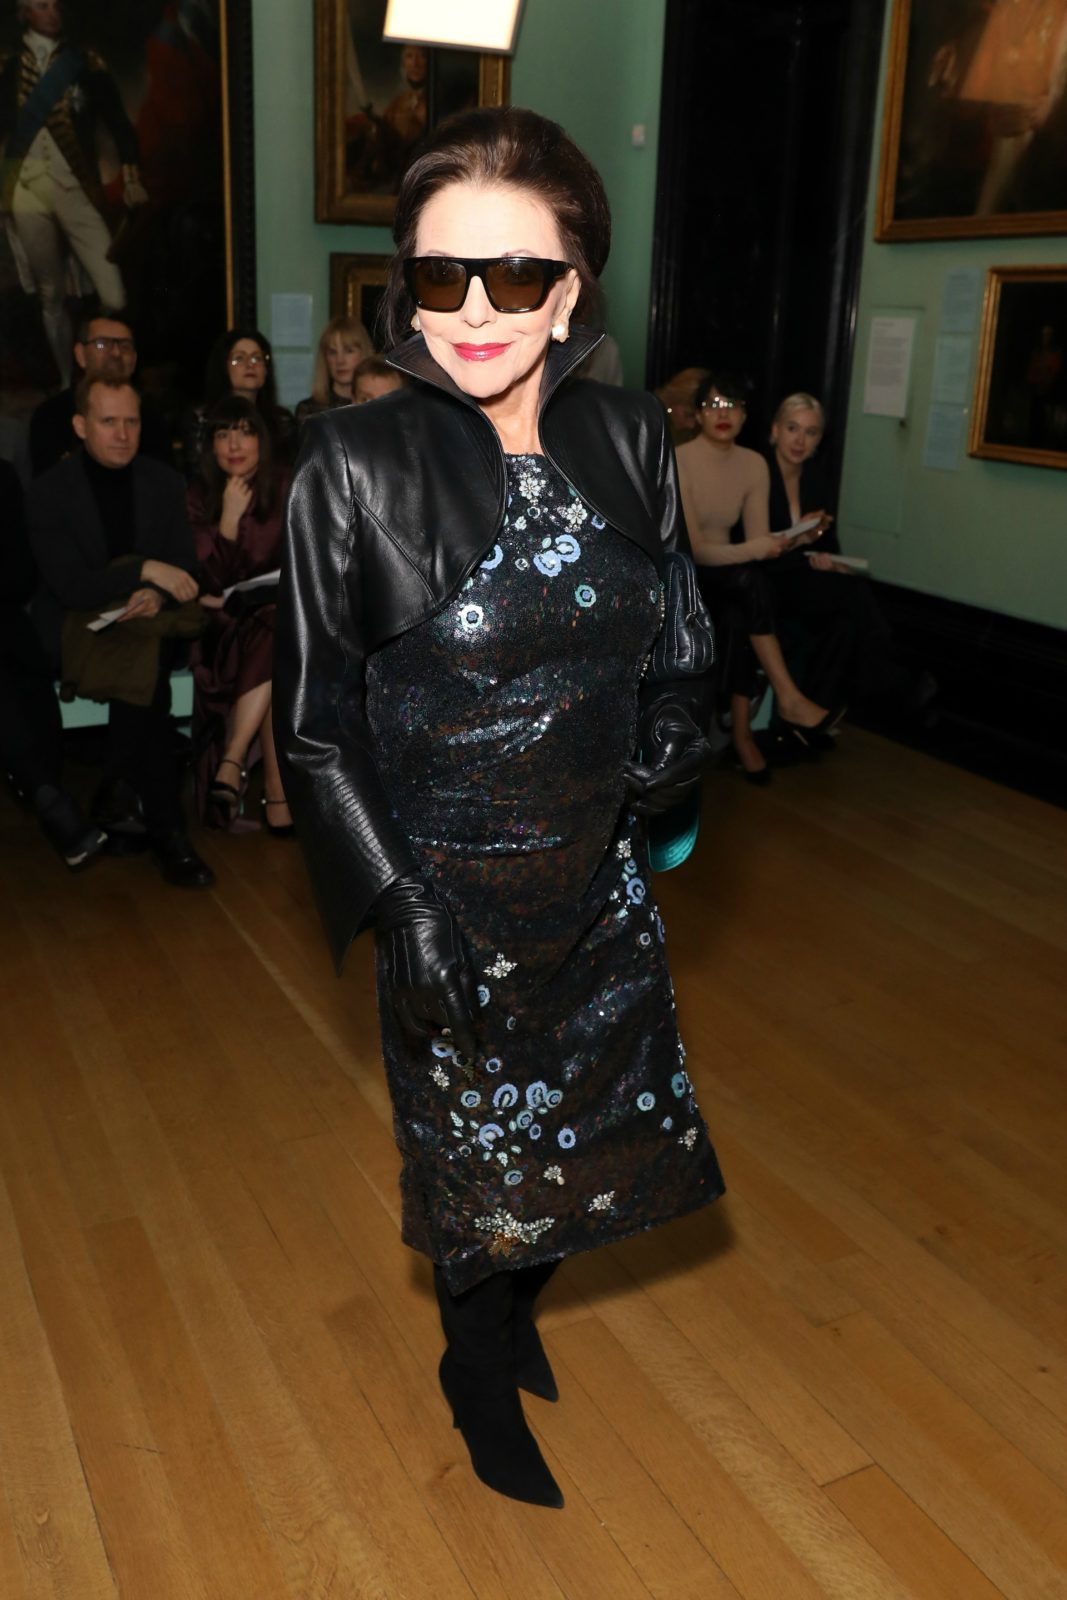 Joan Collins dazzled in a sequinned dress and cropped leather jacket as she attended a fashion event in London on Monday. Source: Getty